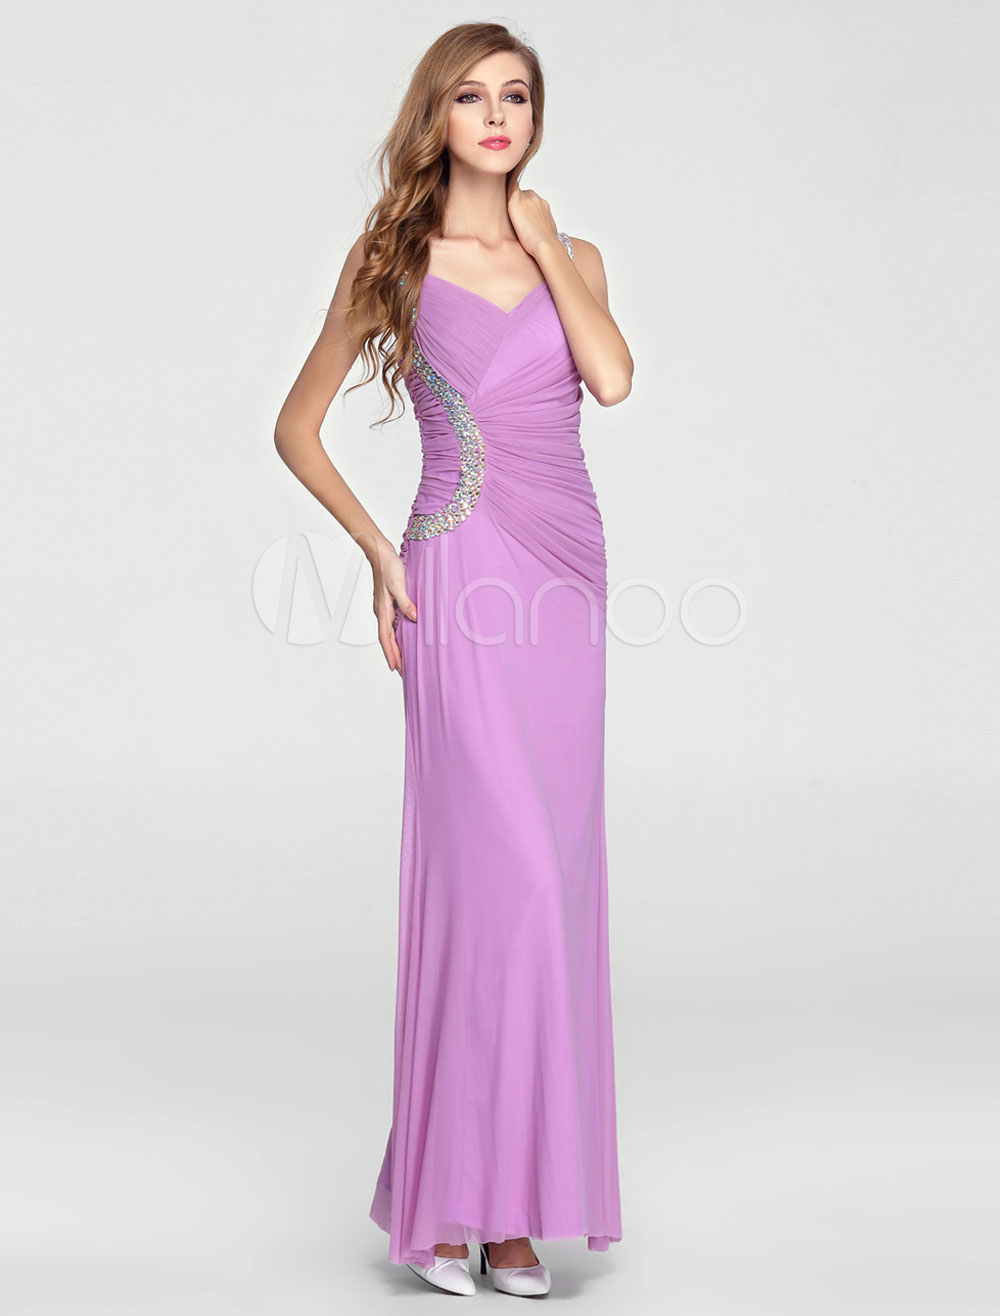 Lilac Ruched Long Prom Dress with Beading Accents